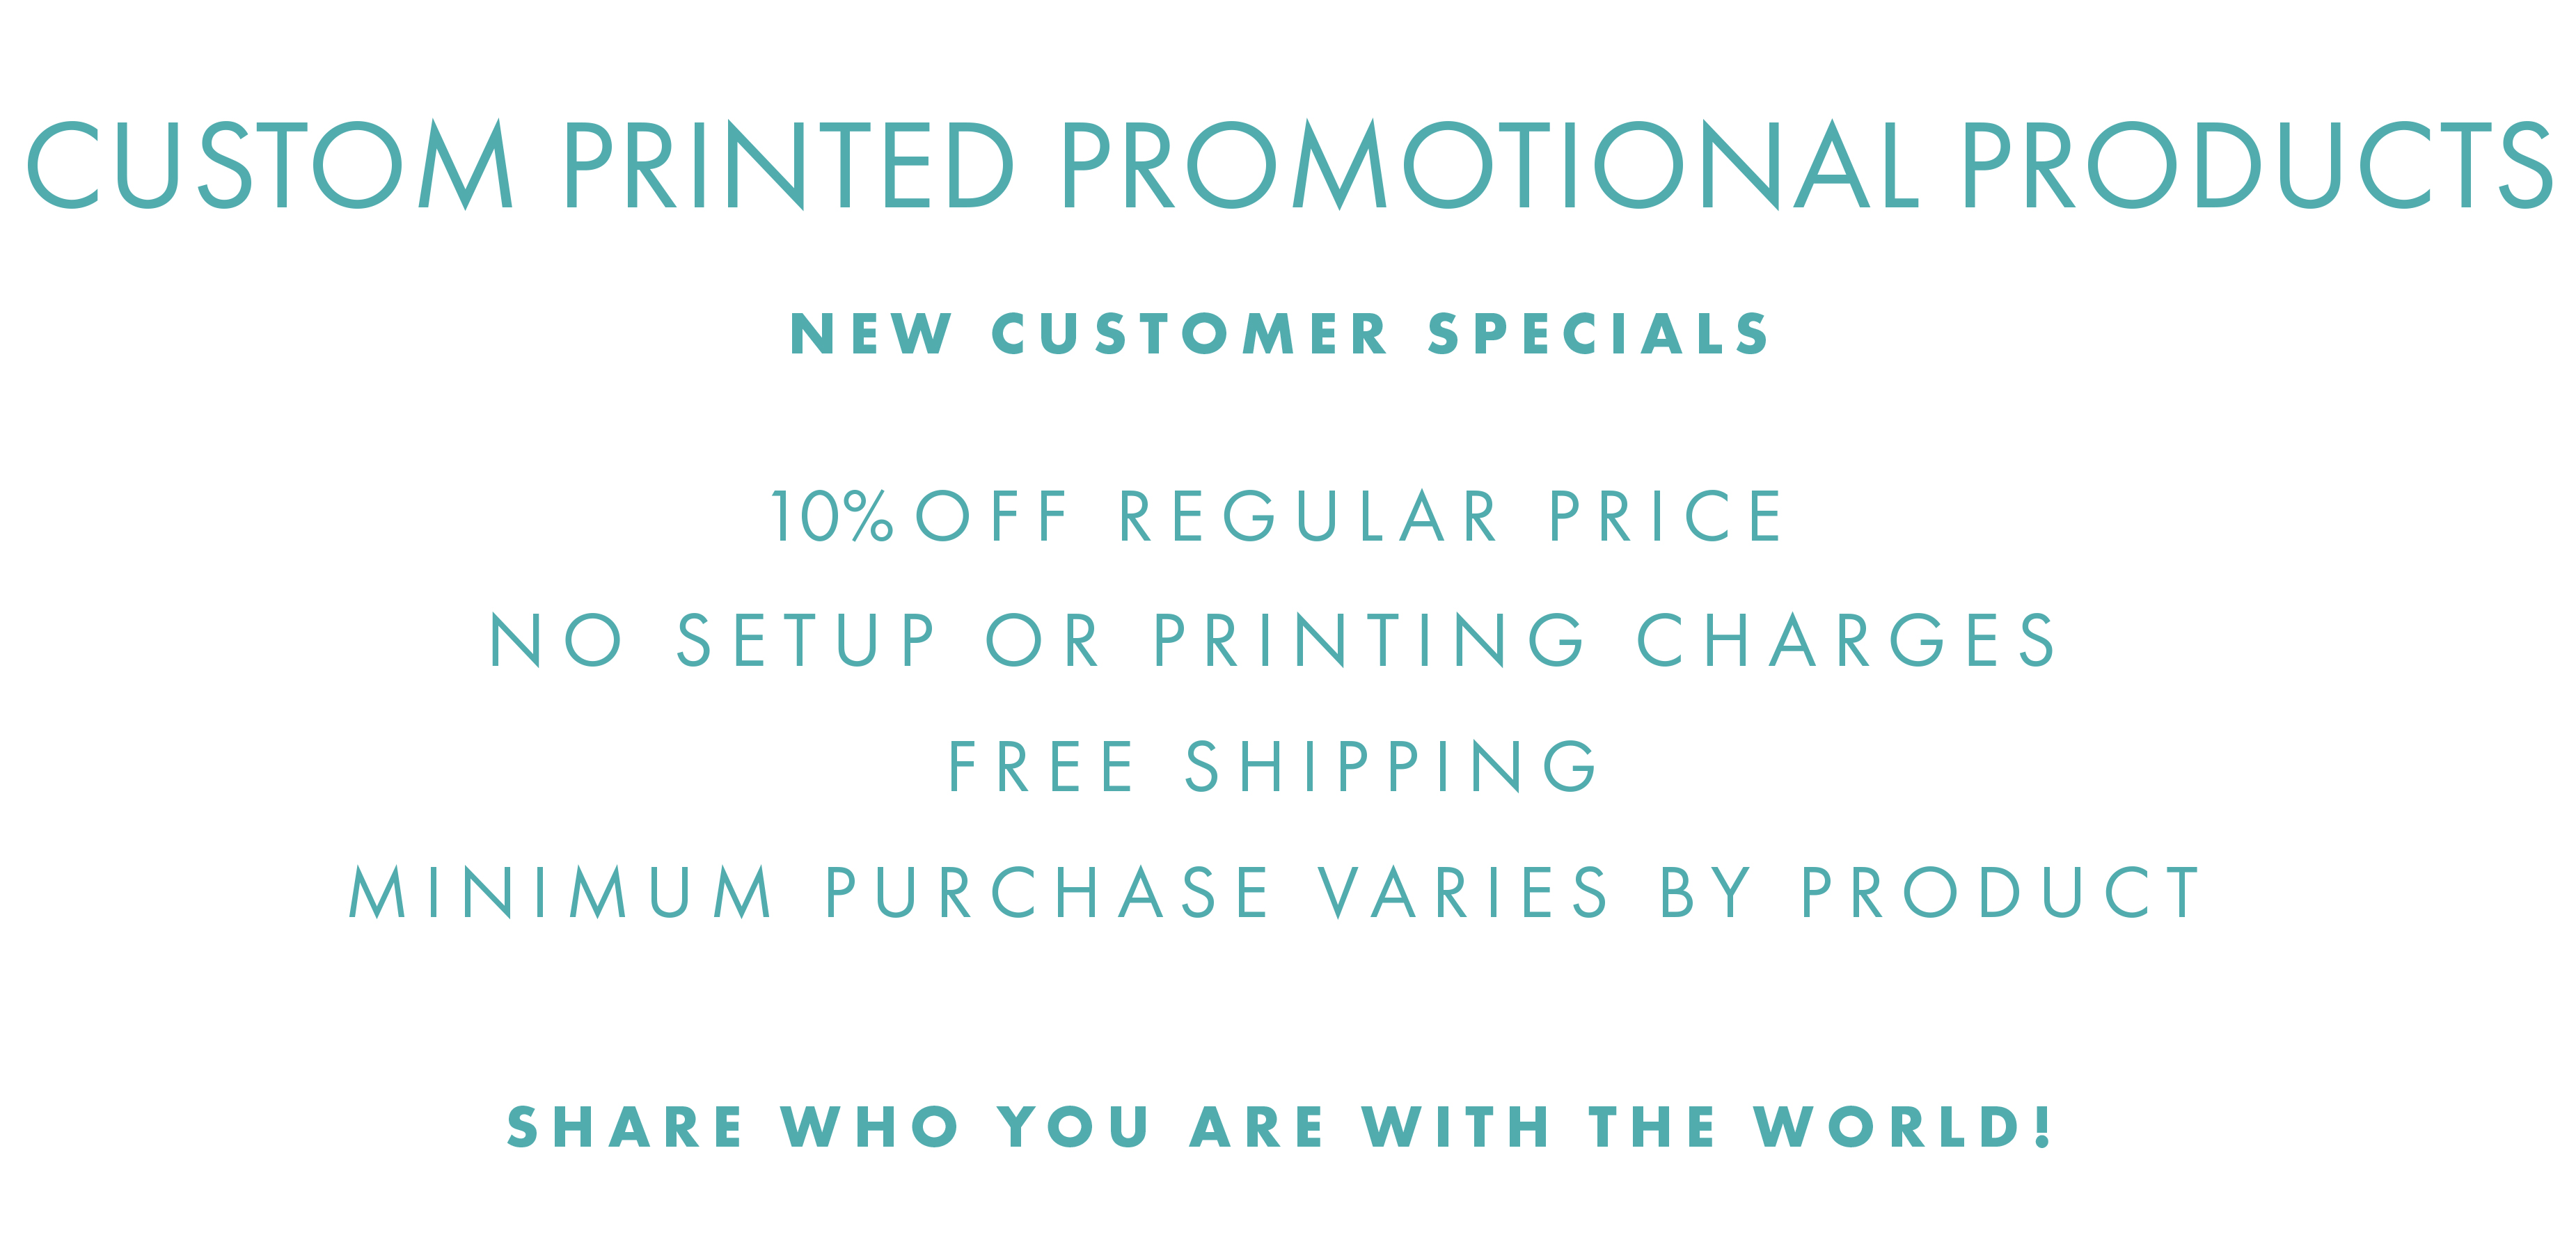 Custom Printed Promotional Products, no setup or printing charges, free shipping